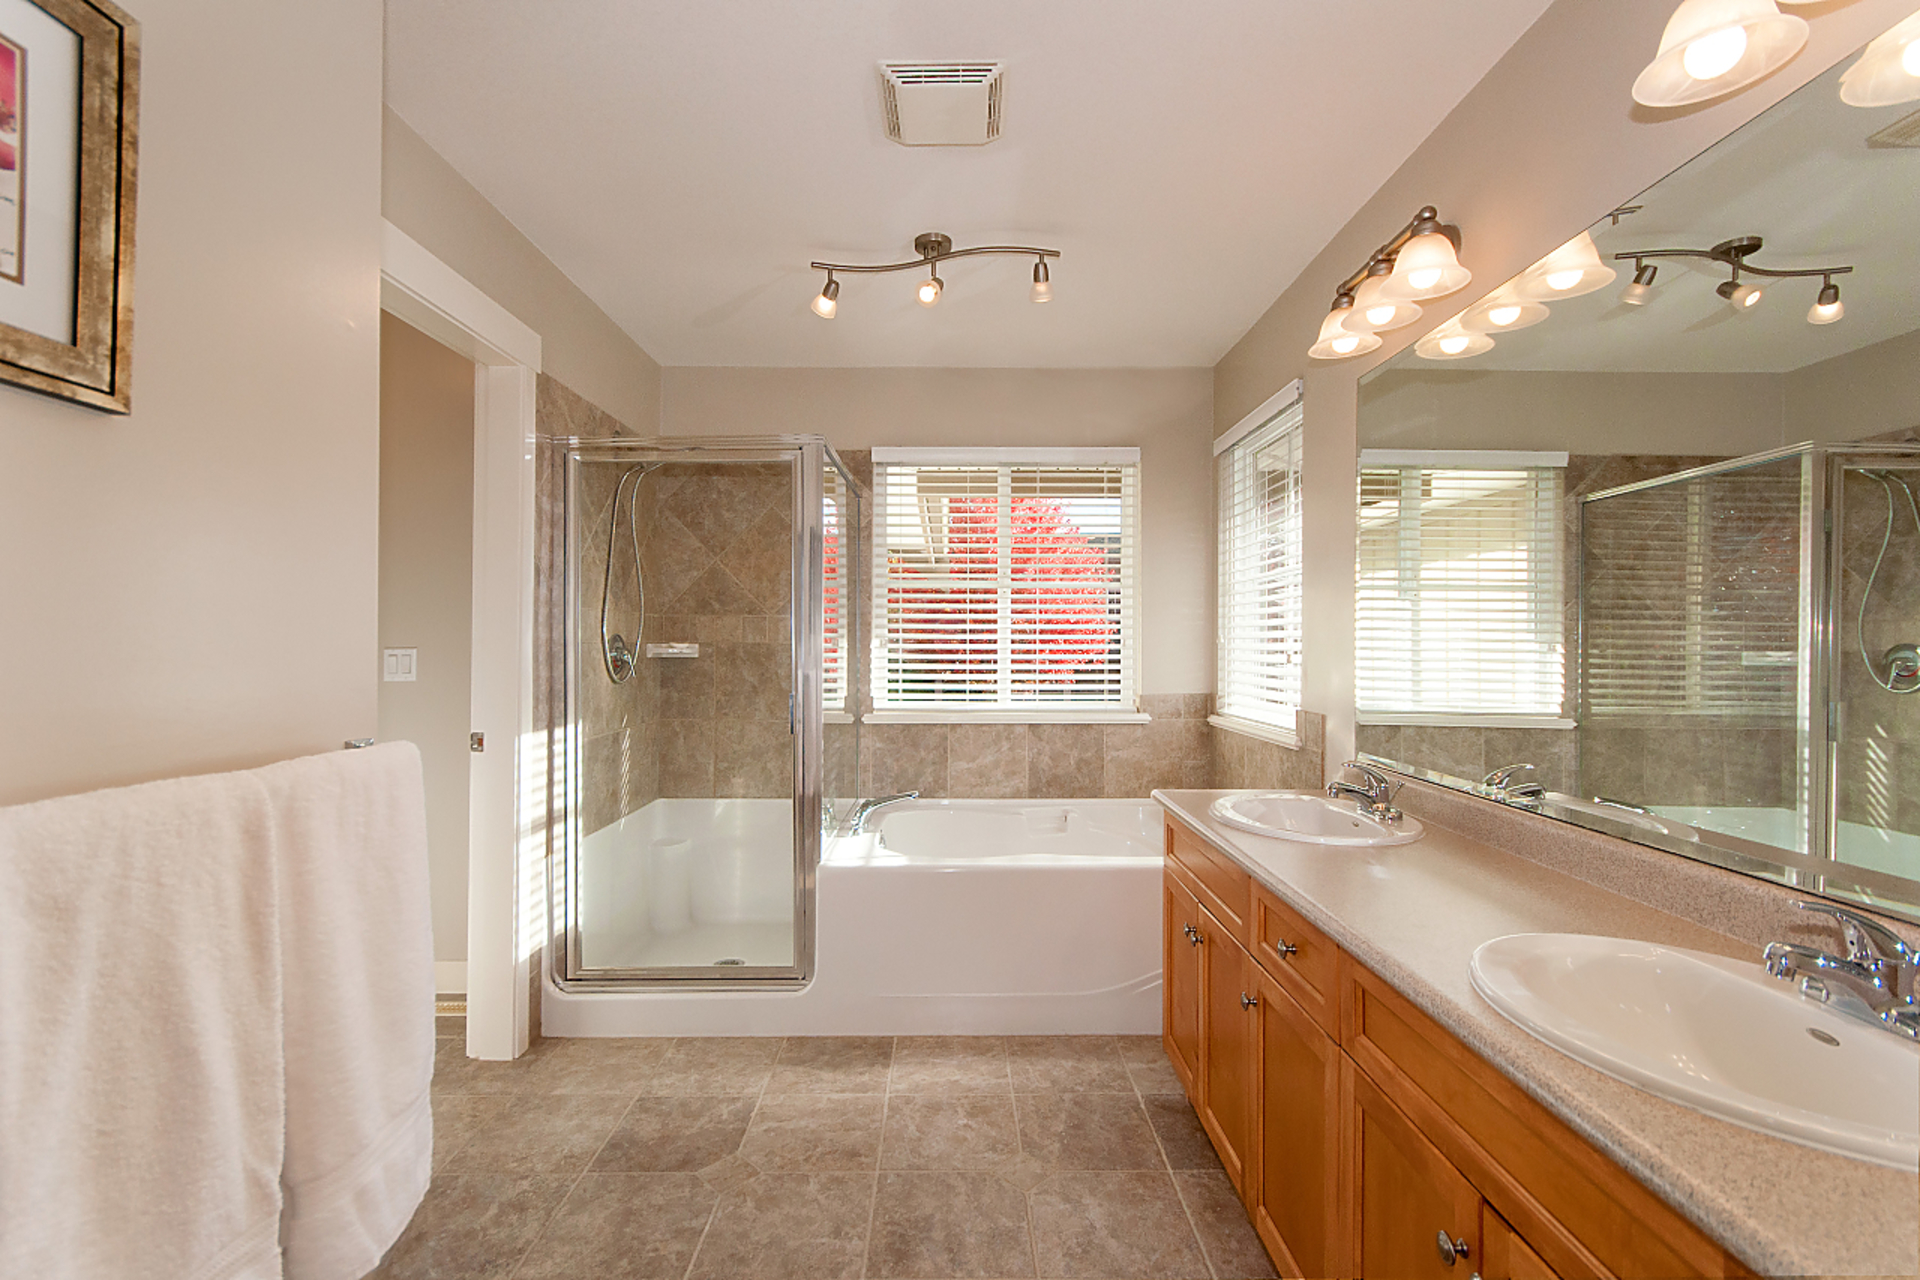 034 at 43 Maple Drive, Heritage Woods PM, Port Moody